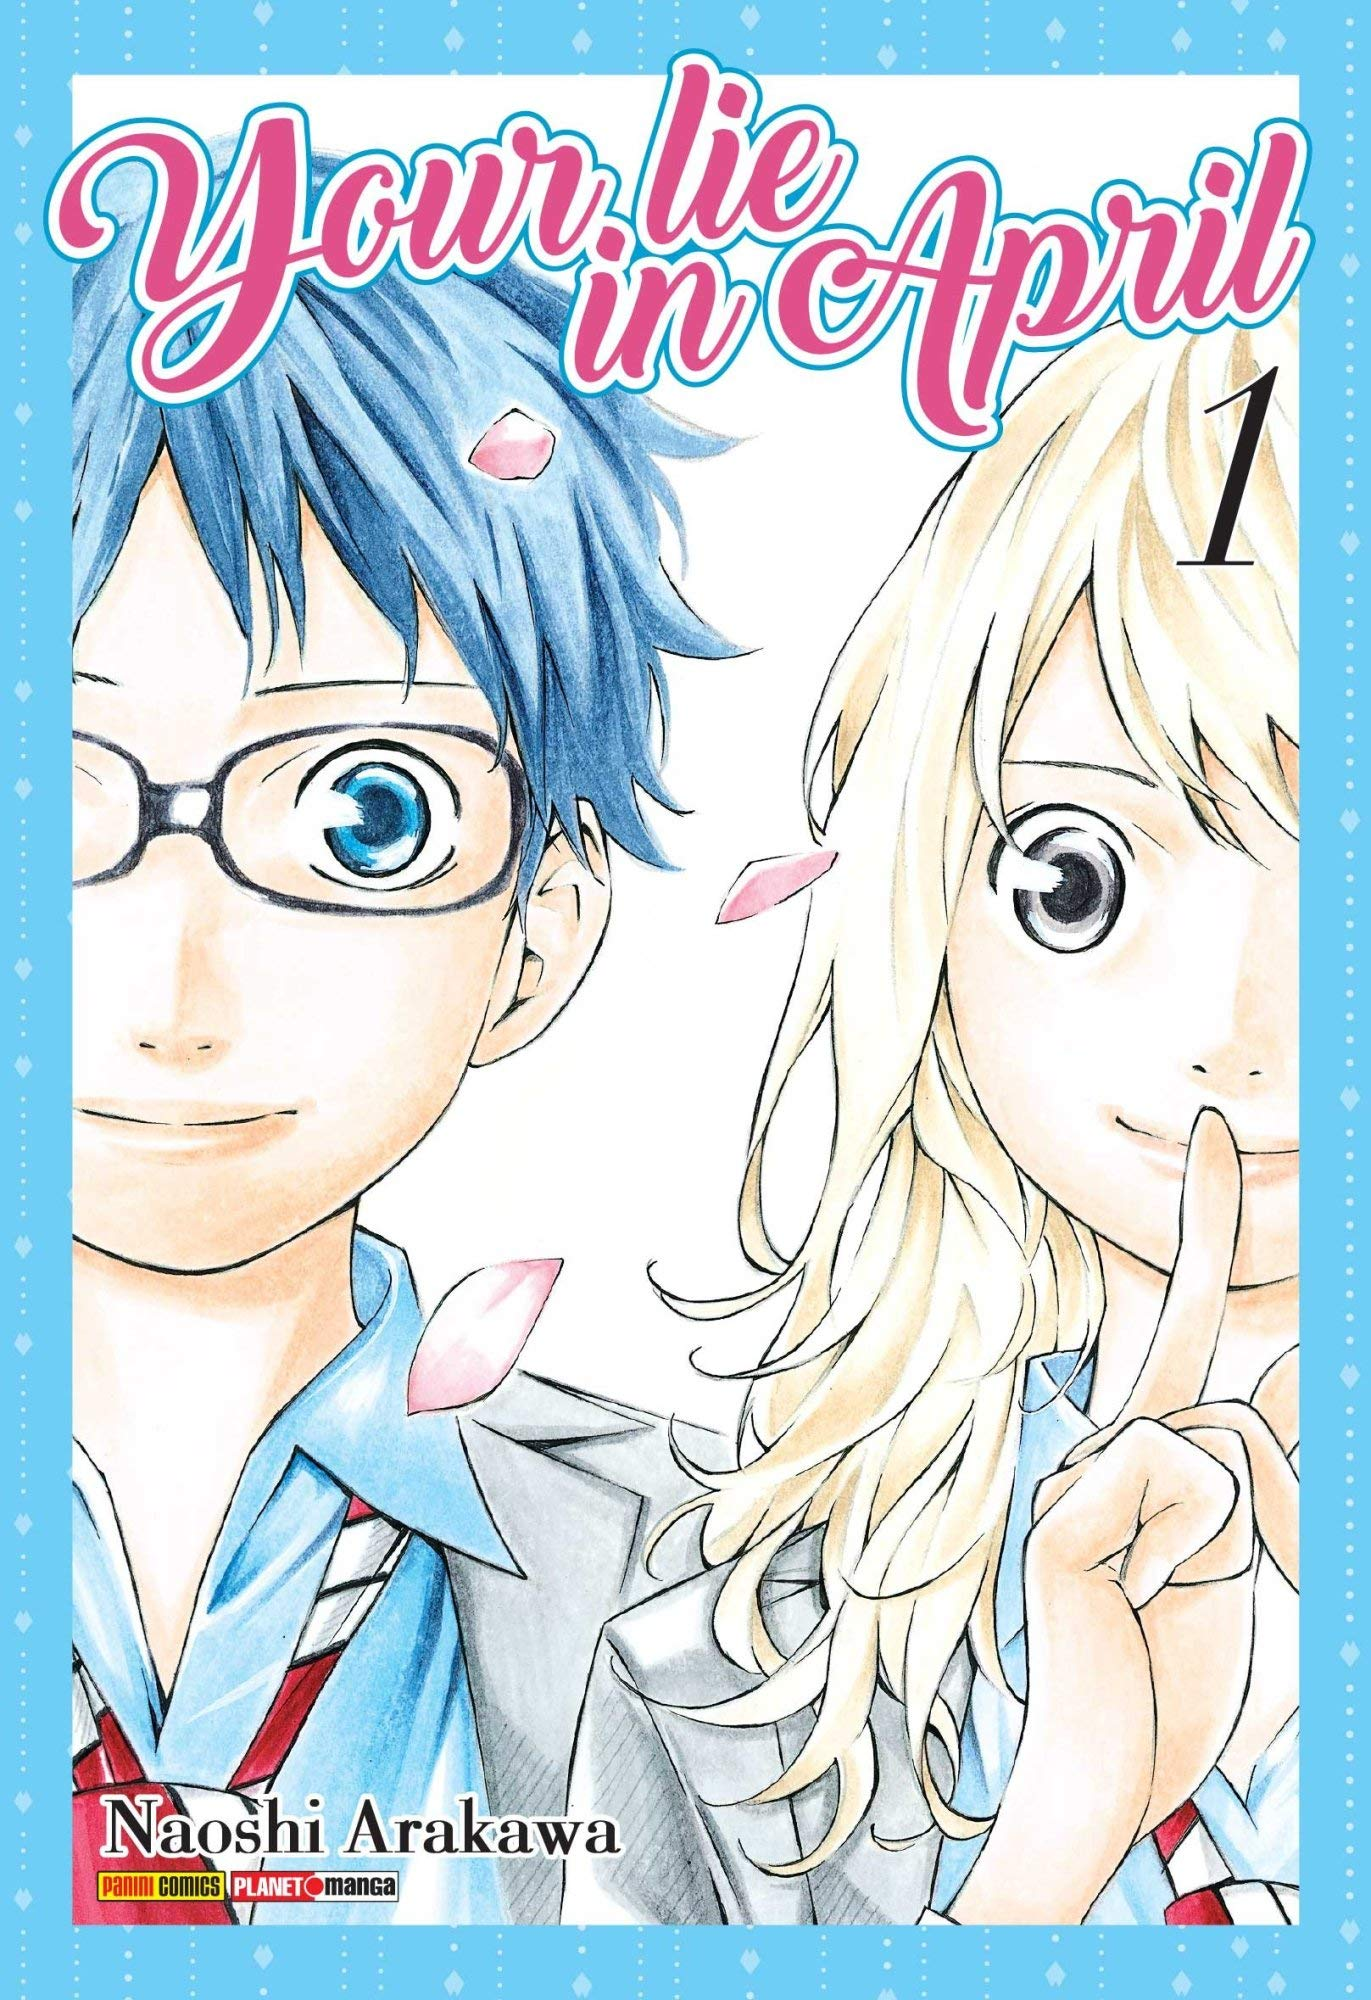 Your lie in april Vol. 1 | Multizone: Comics And Games